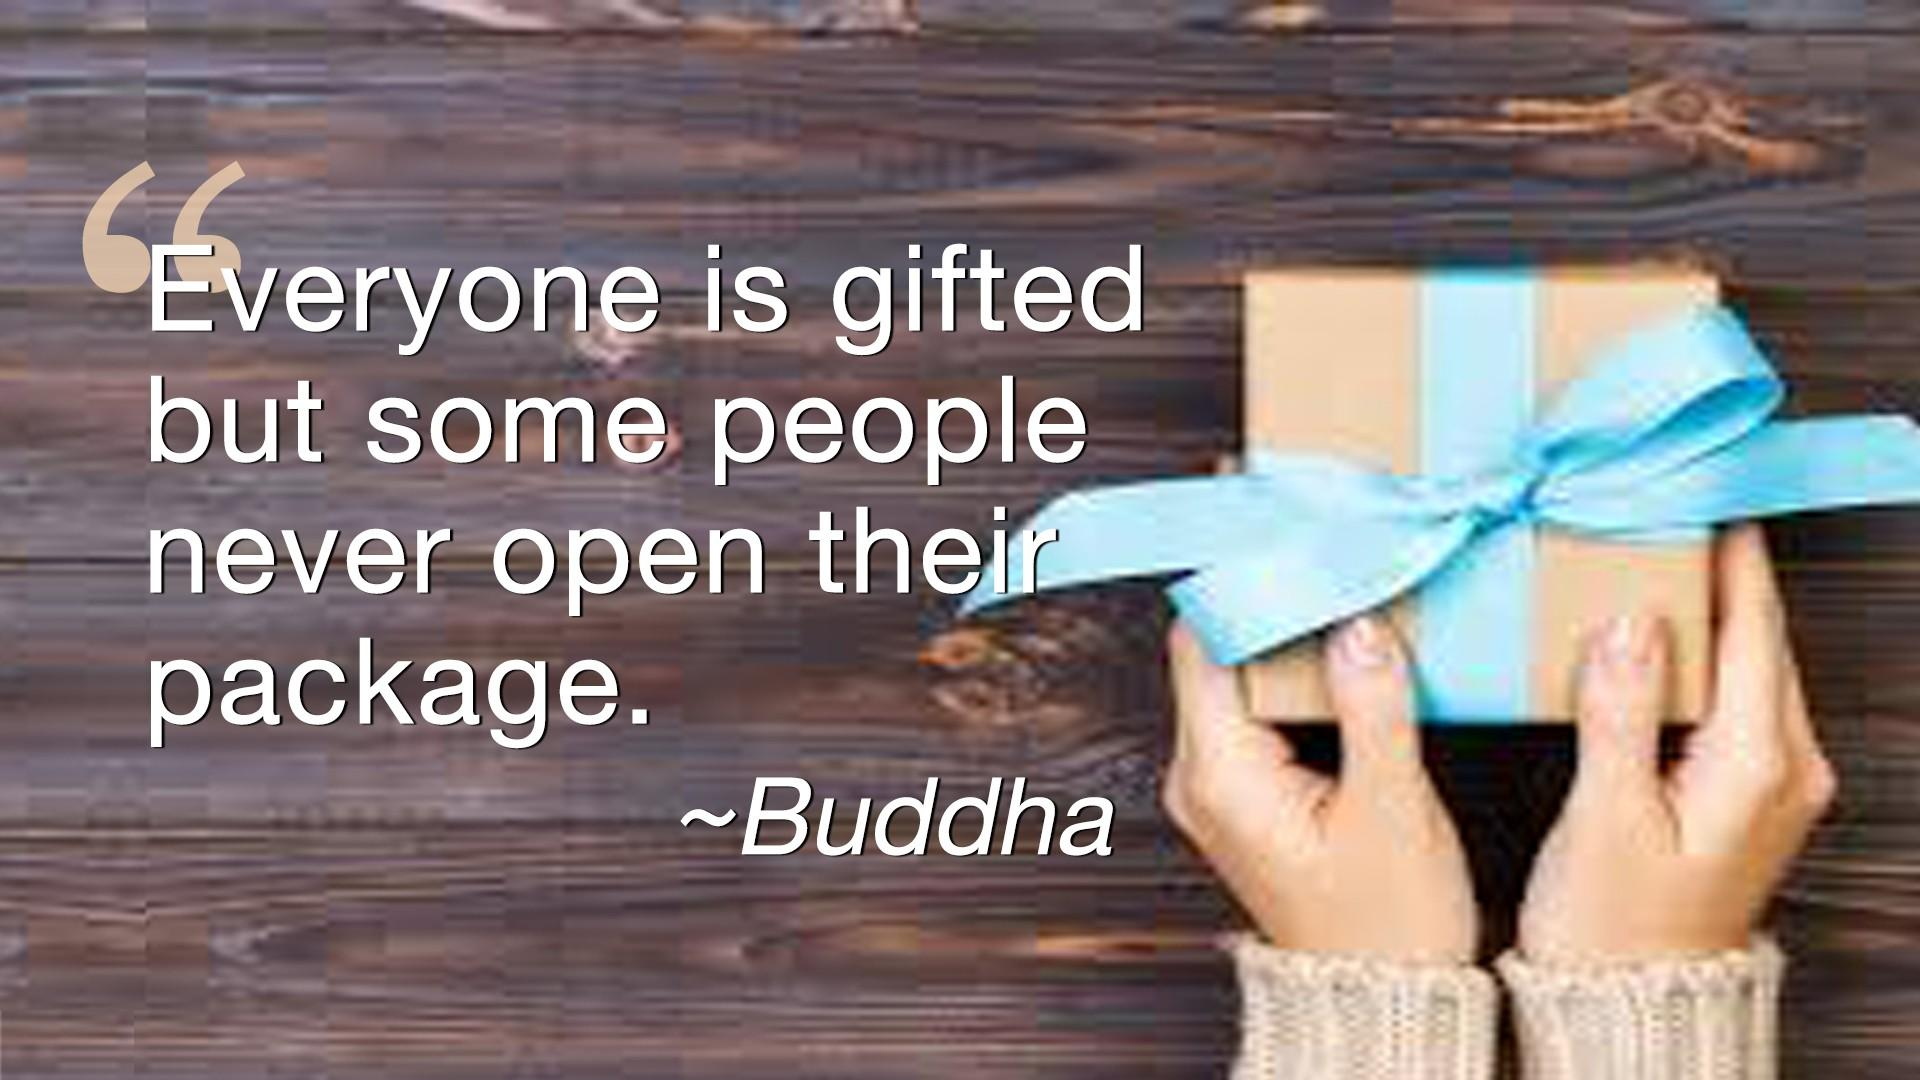 Buddha Quote - Everyone is gifted - but some people never open their package